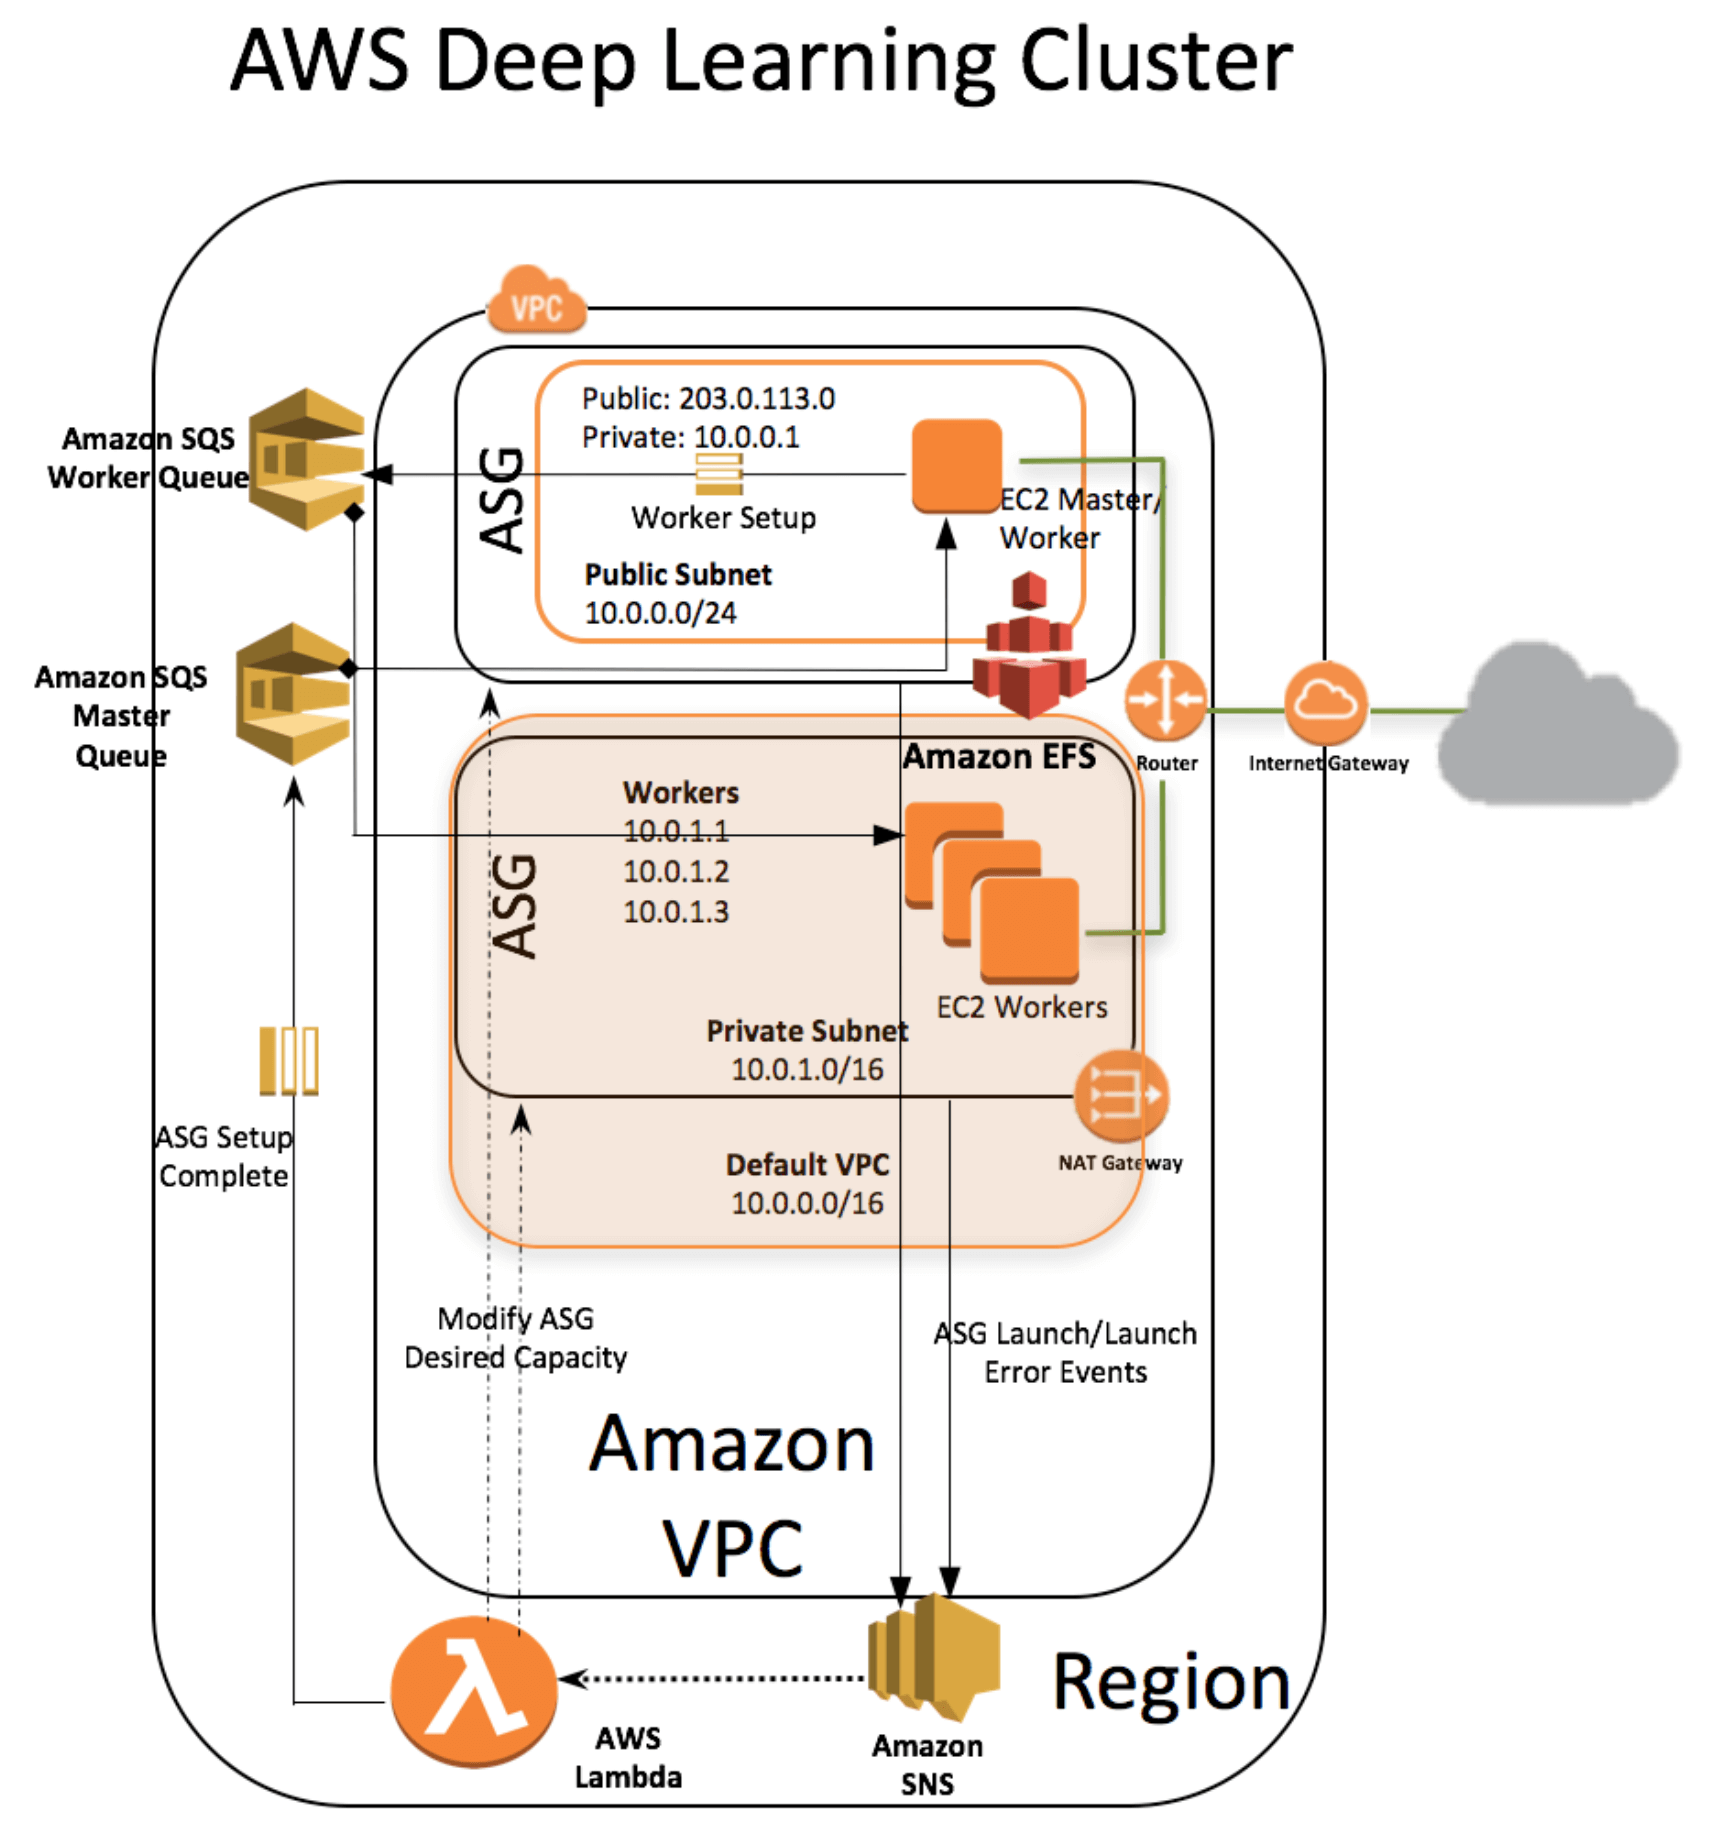 AWS Deep Learning Cluster